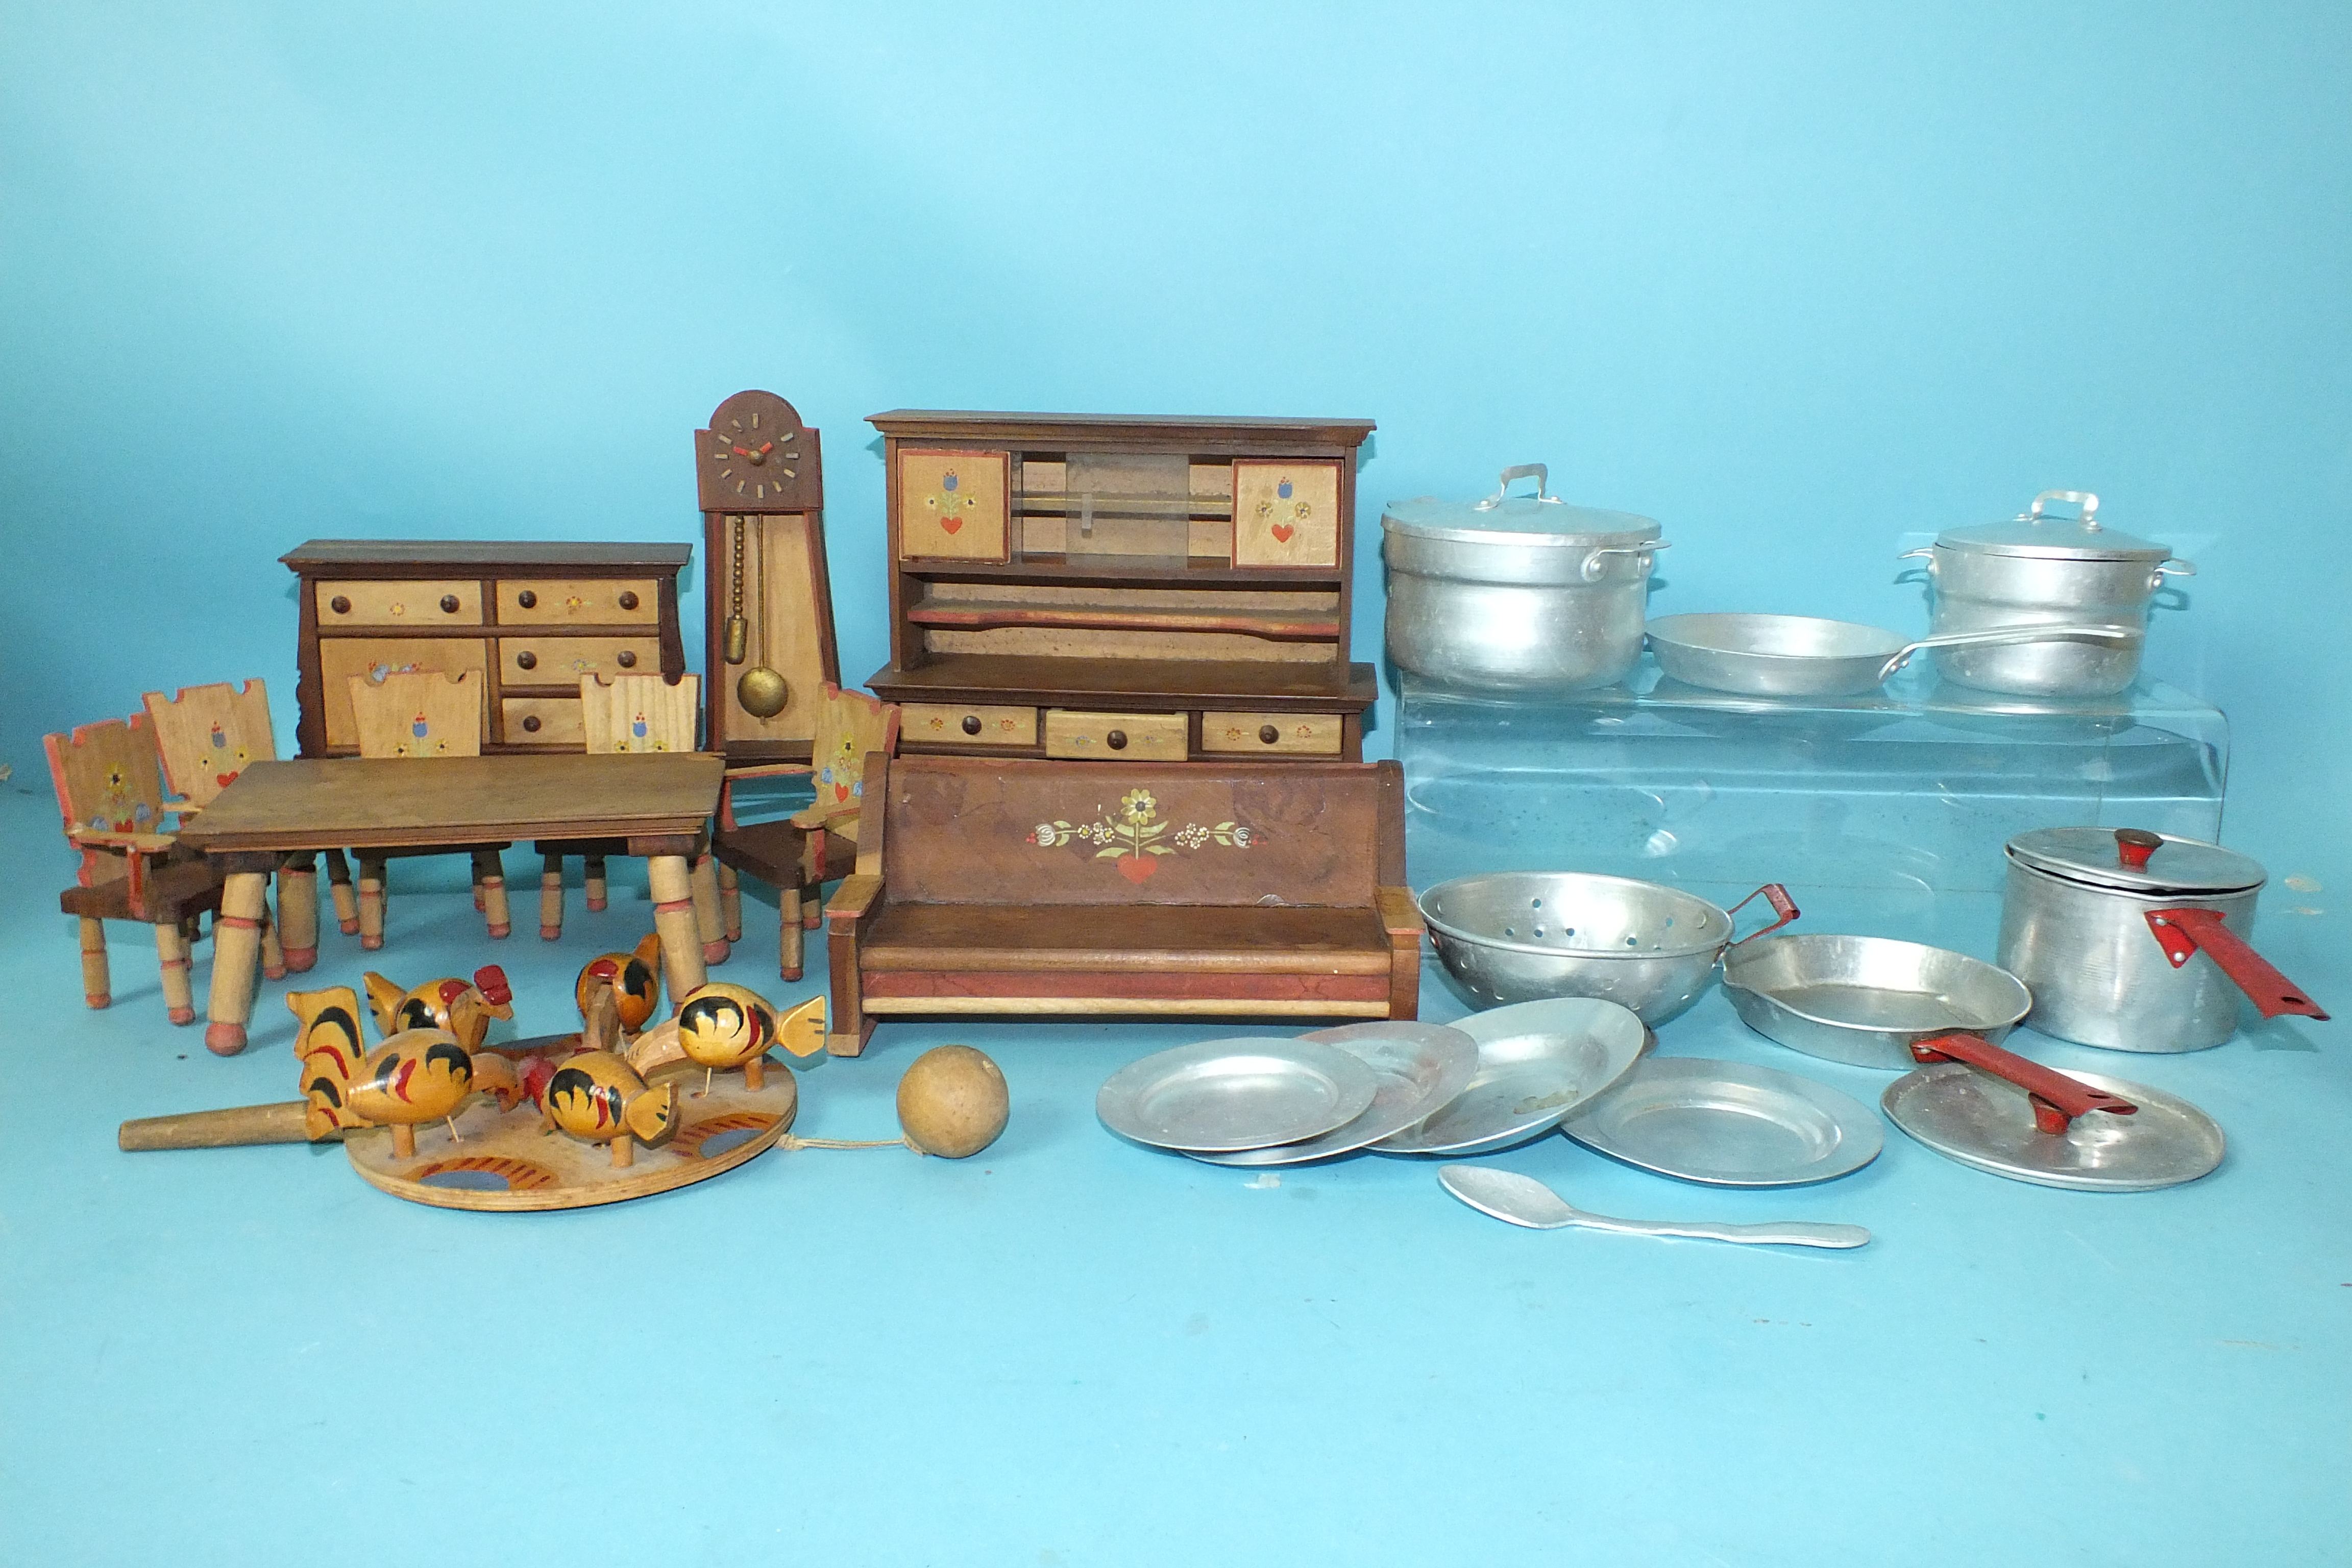 Lot 453 - A quantity of Swiss-style wooden doll's furniture: dresser, clock, sideboard, settee, table and five